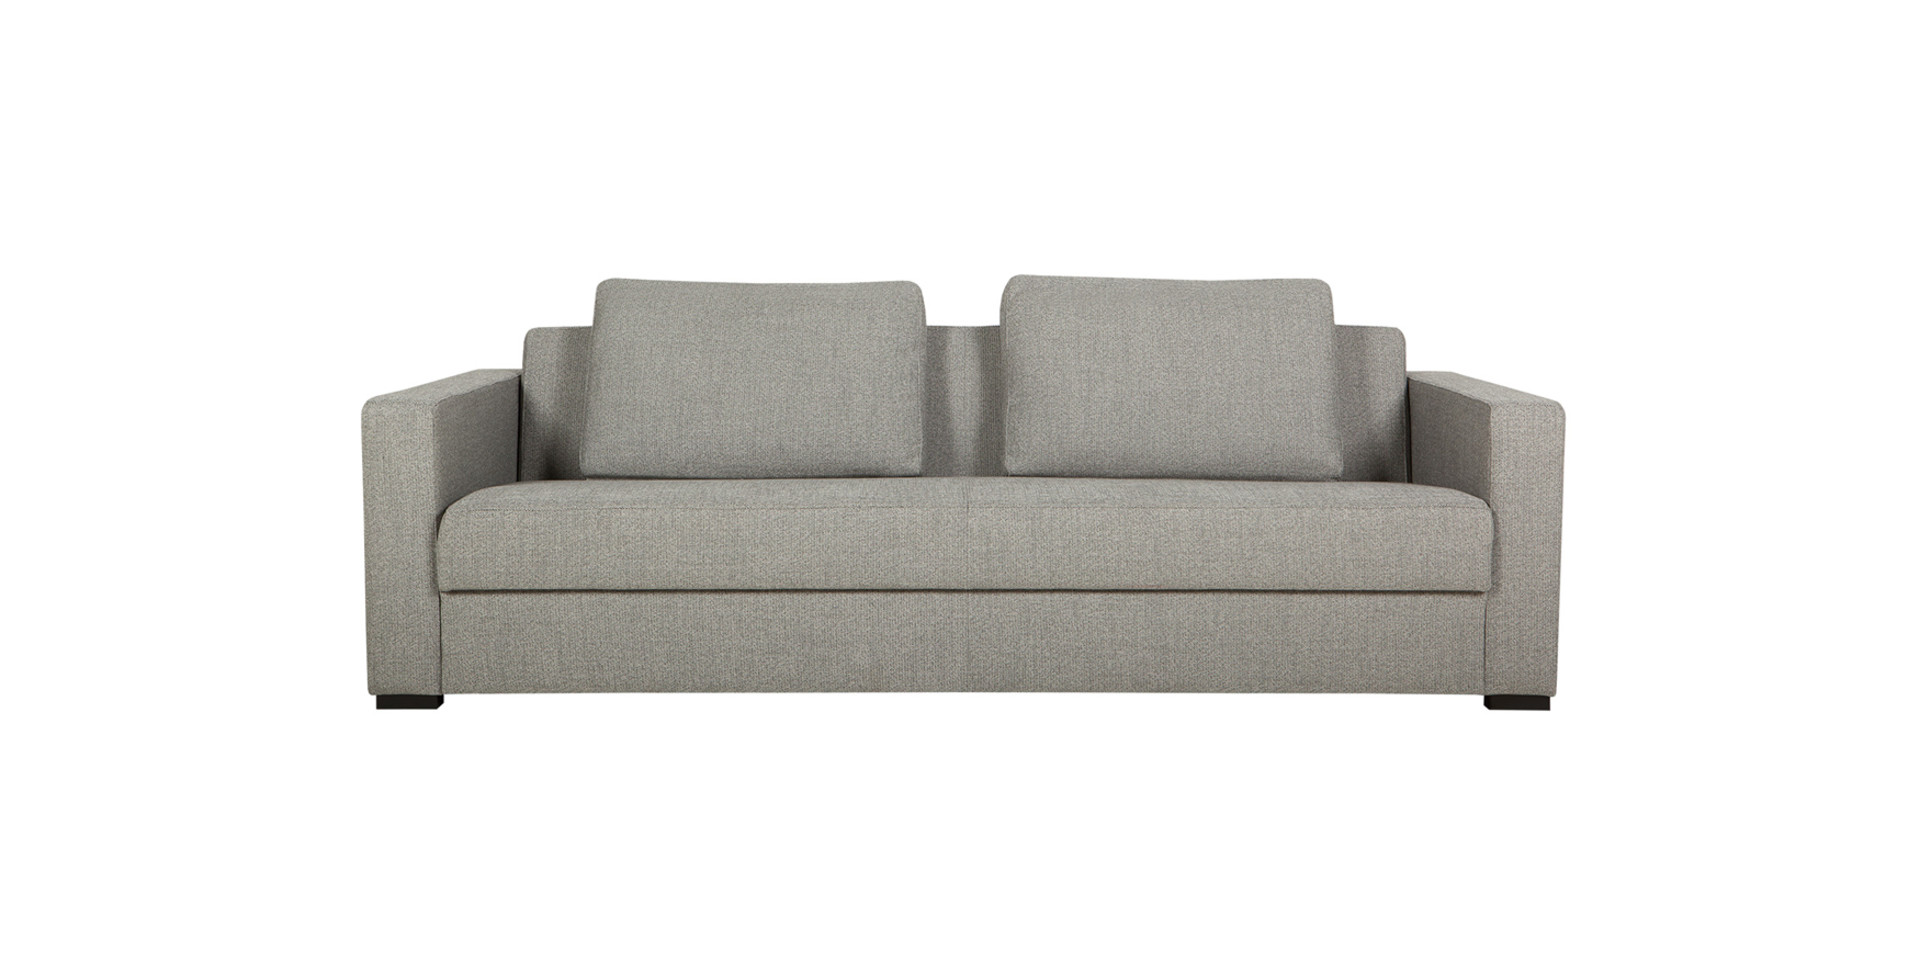 sits-puk-canape-convertible-sofa_bed_origin51_light_grey_1